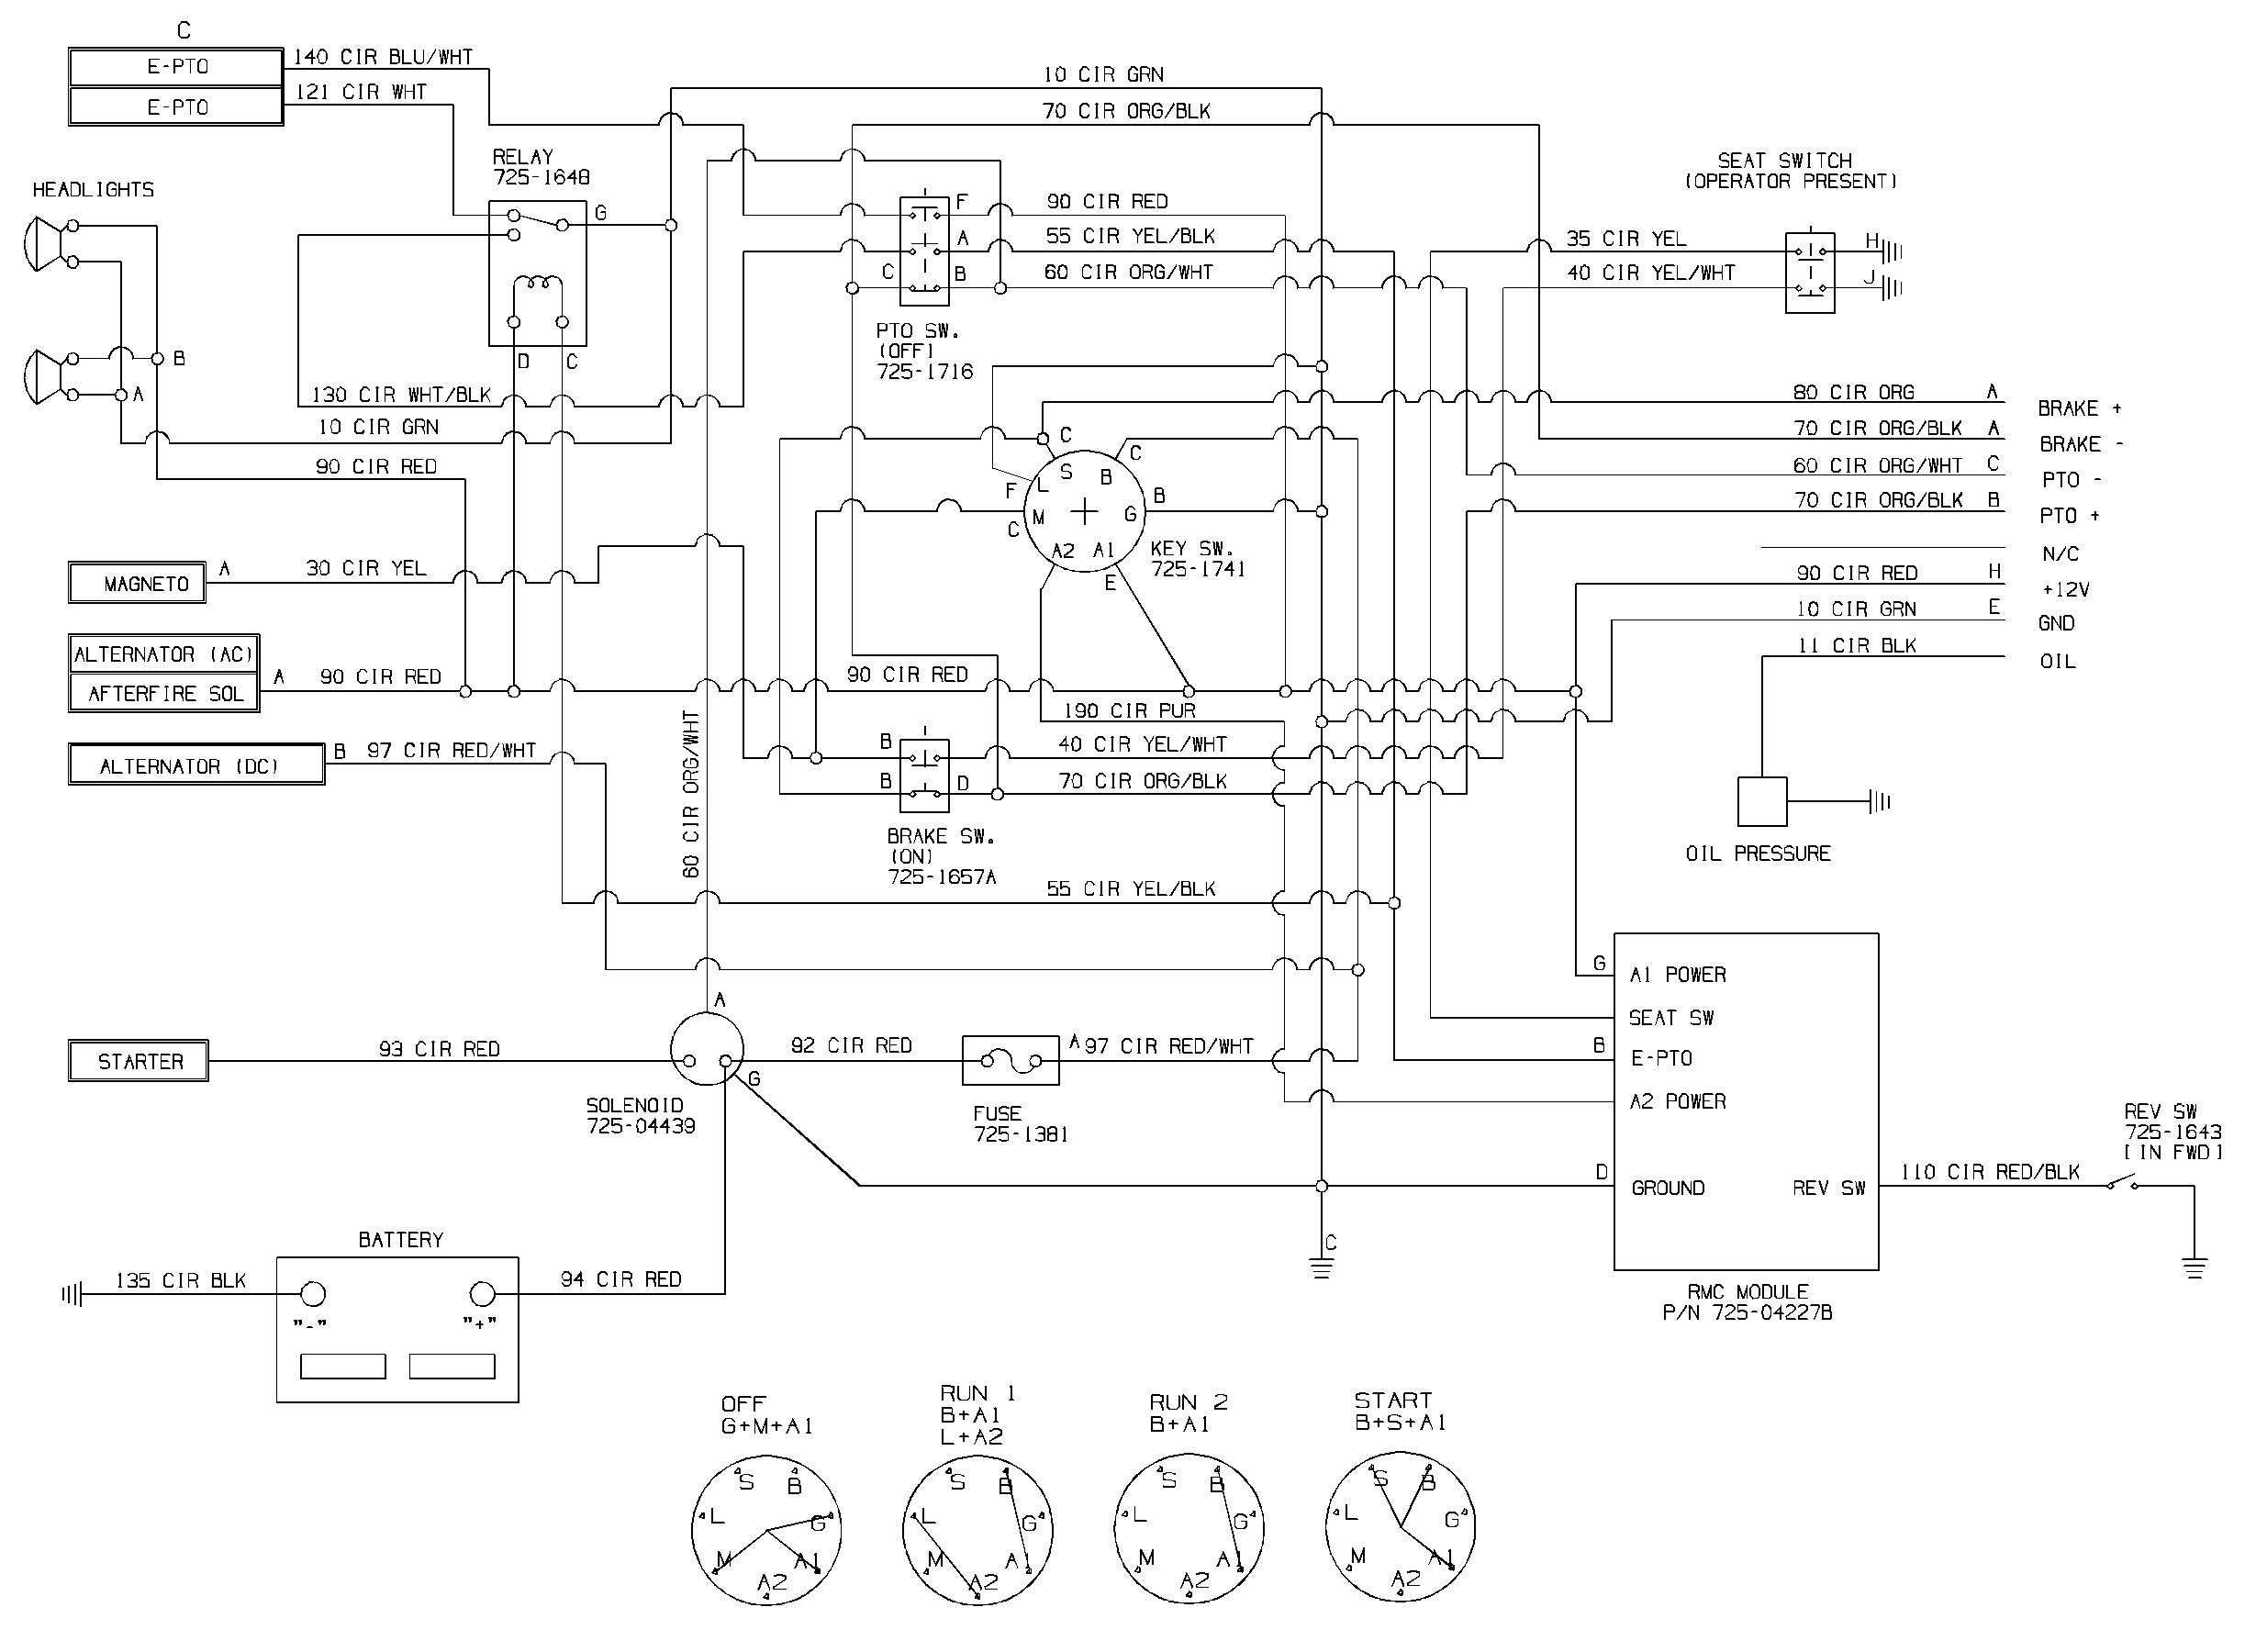 SLTX1050_Schematic wiring diagram for 1330 cub cadet the wiring diagram cub cadet 1315 wiring diagram at bakdesigns.co